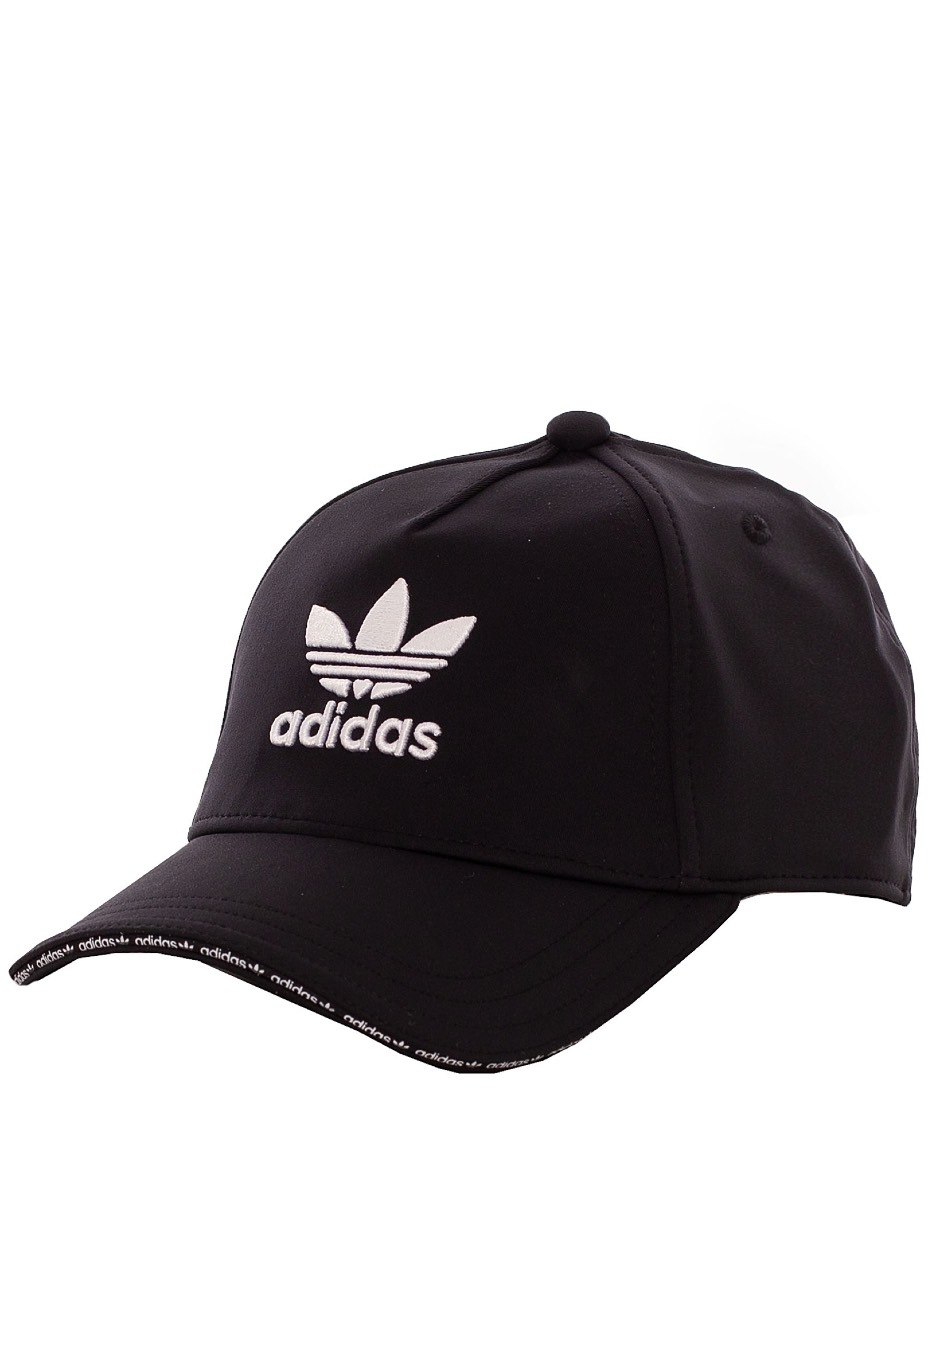 Adidas - Originals Black - Cap - Streetwear Shop - Impericon.com AU fe78b20a9eb